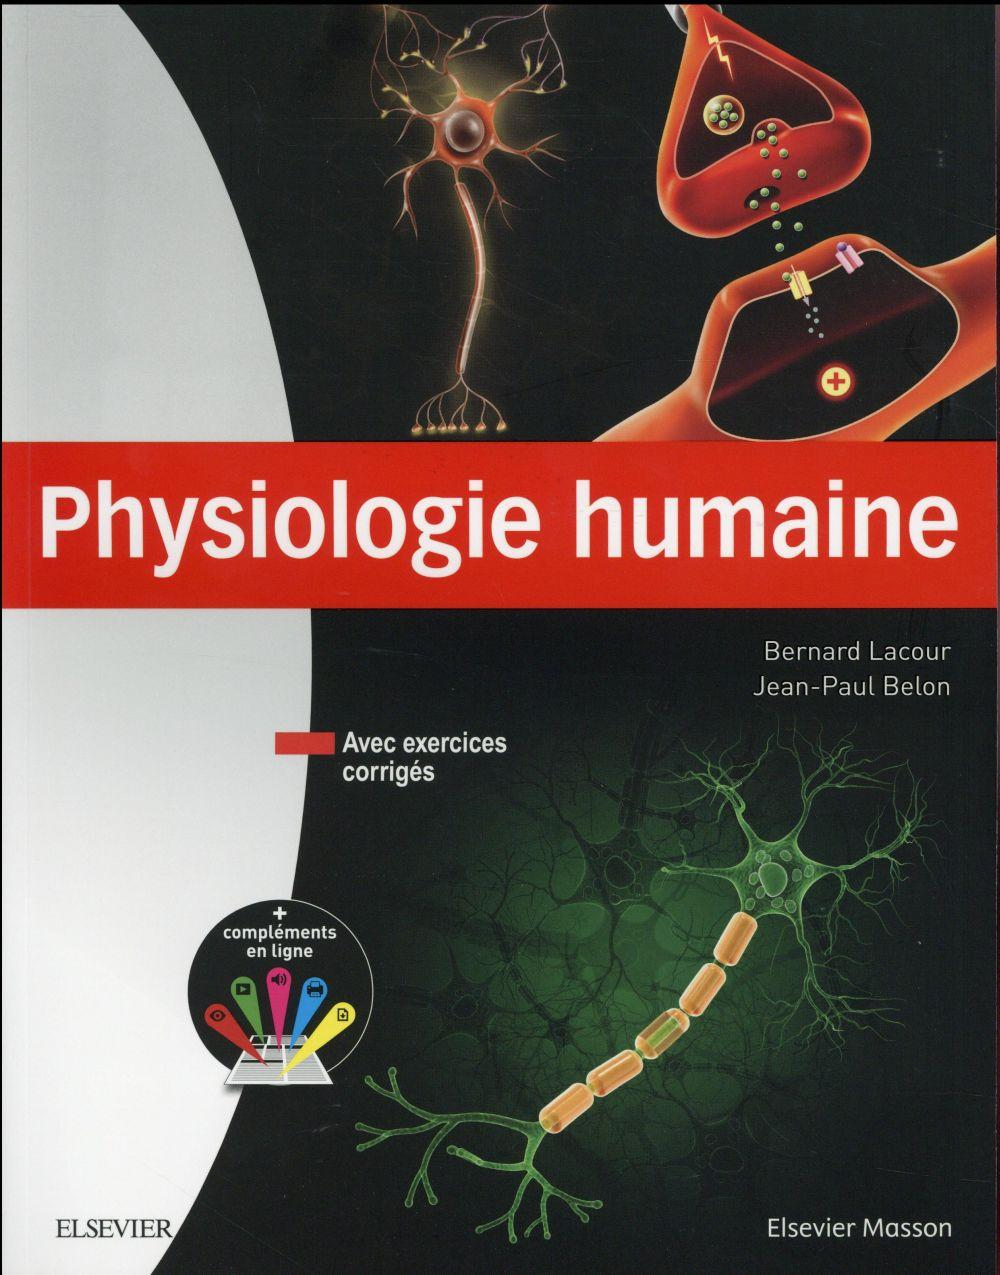 Physiologie humaine  - Bernard Lacour  - Jean-Paul Belon